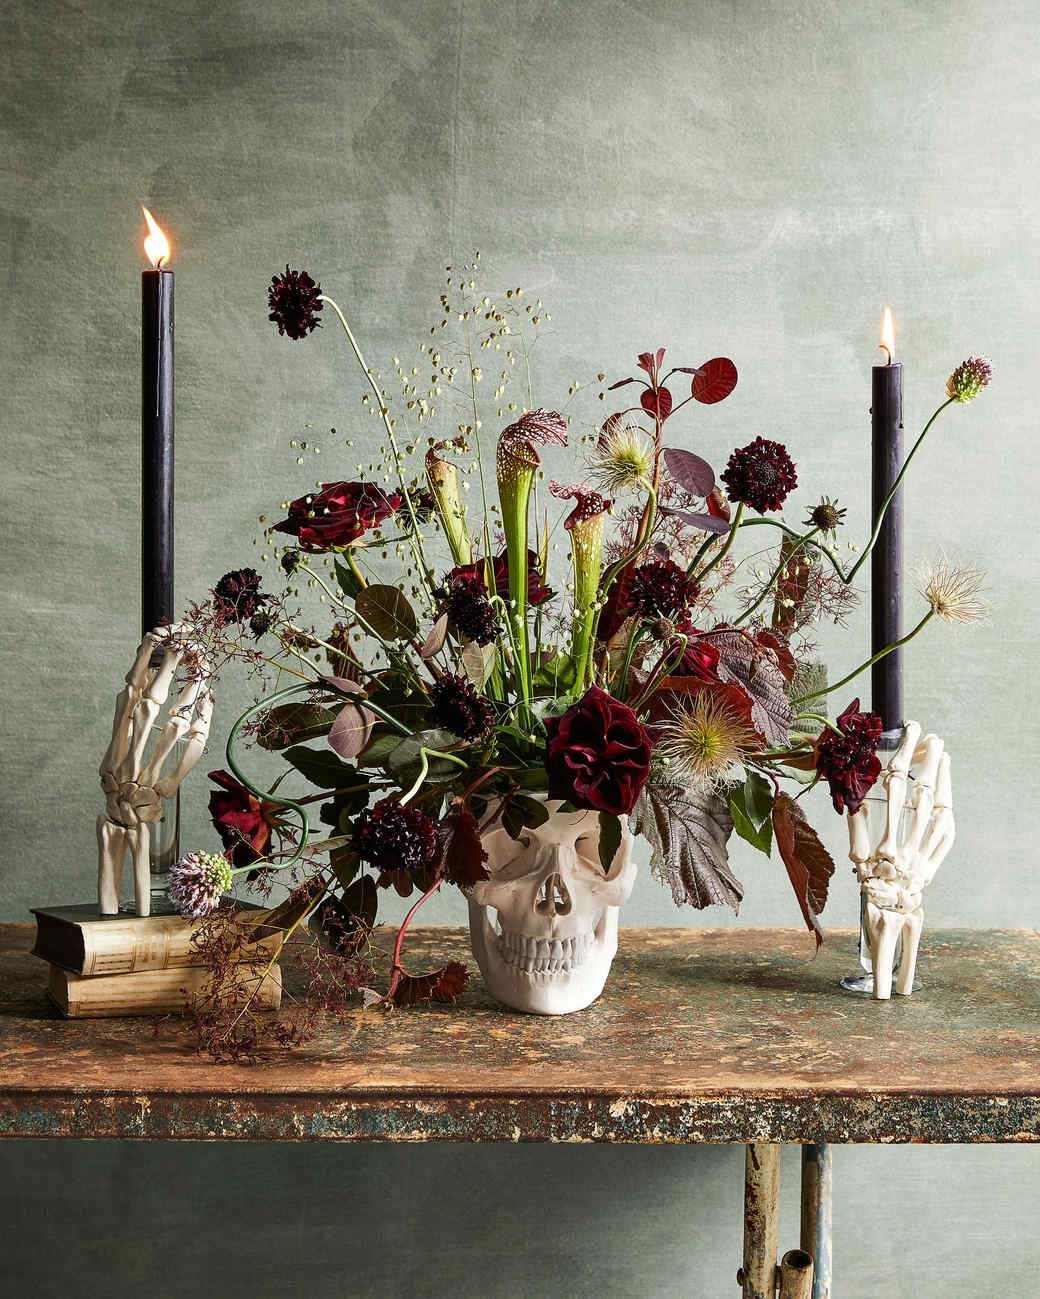 12 Flowers That Would Make Eerily Beautiful Additions to Your Halloween Décor